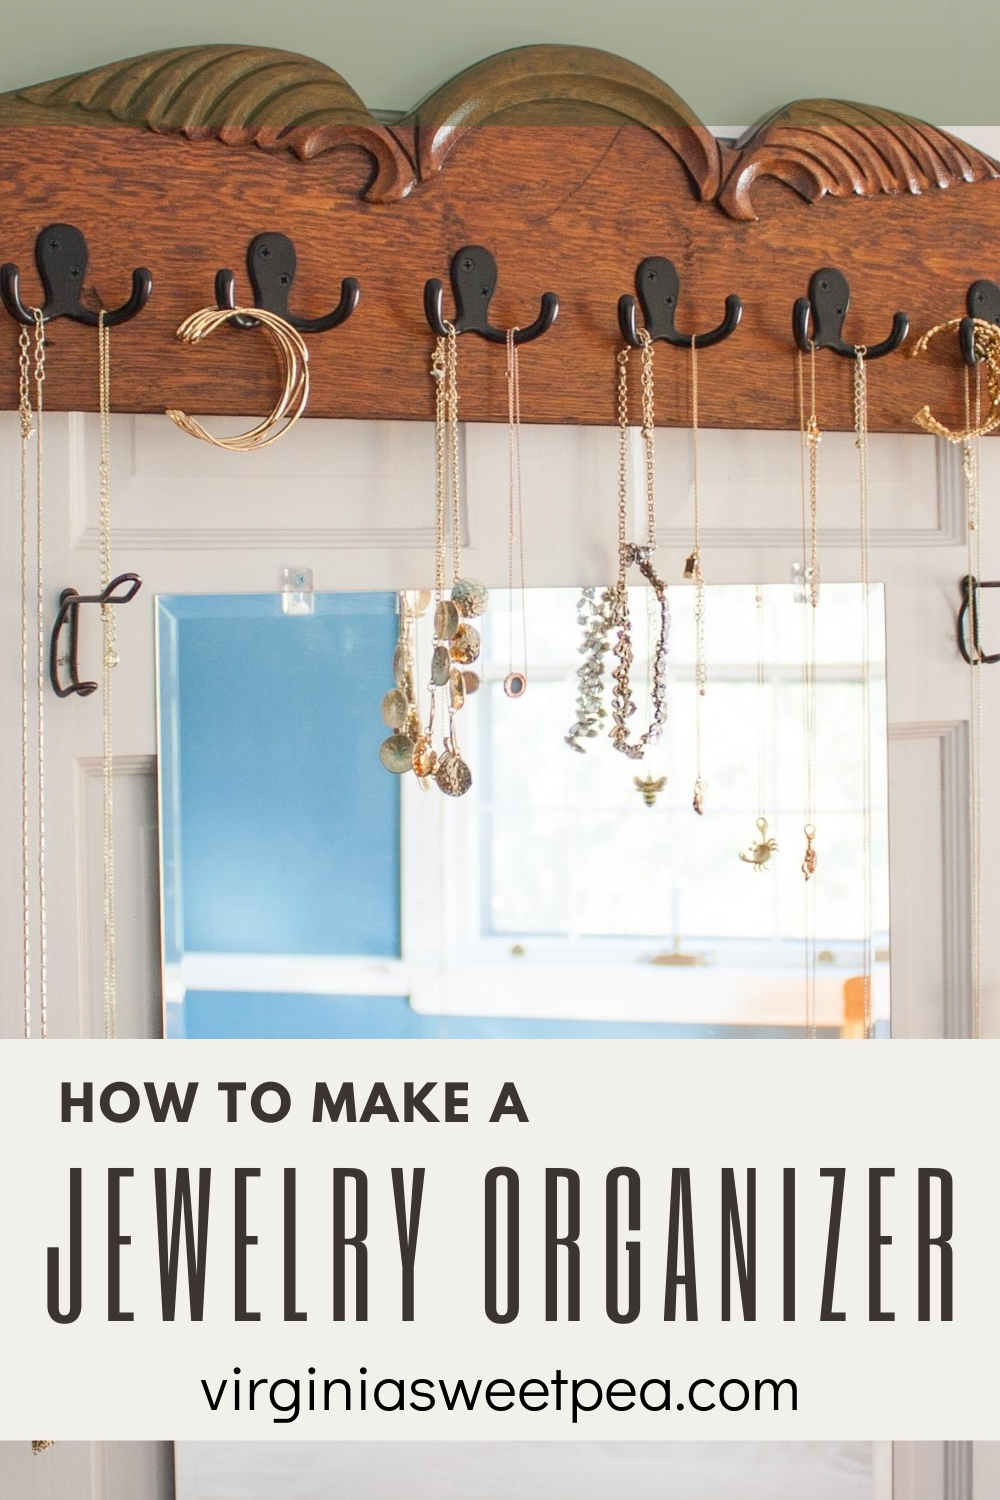 How to Make a Jewelry Organizer - Learn how to make a jewelry organizer to hang on a wall or closet door by following this step-by-step tutorial.  #jewelryorganizer #upcycleproject via @spaula